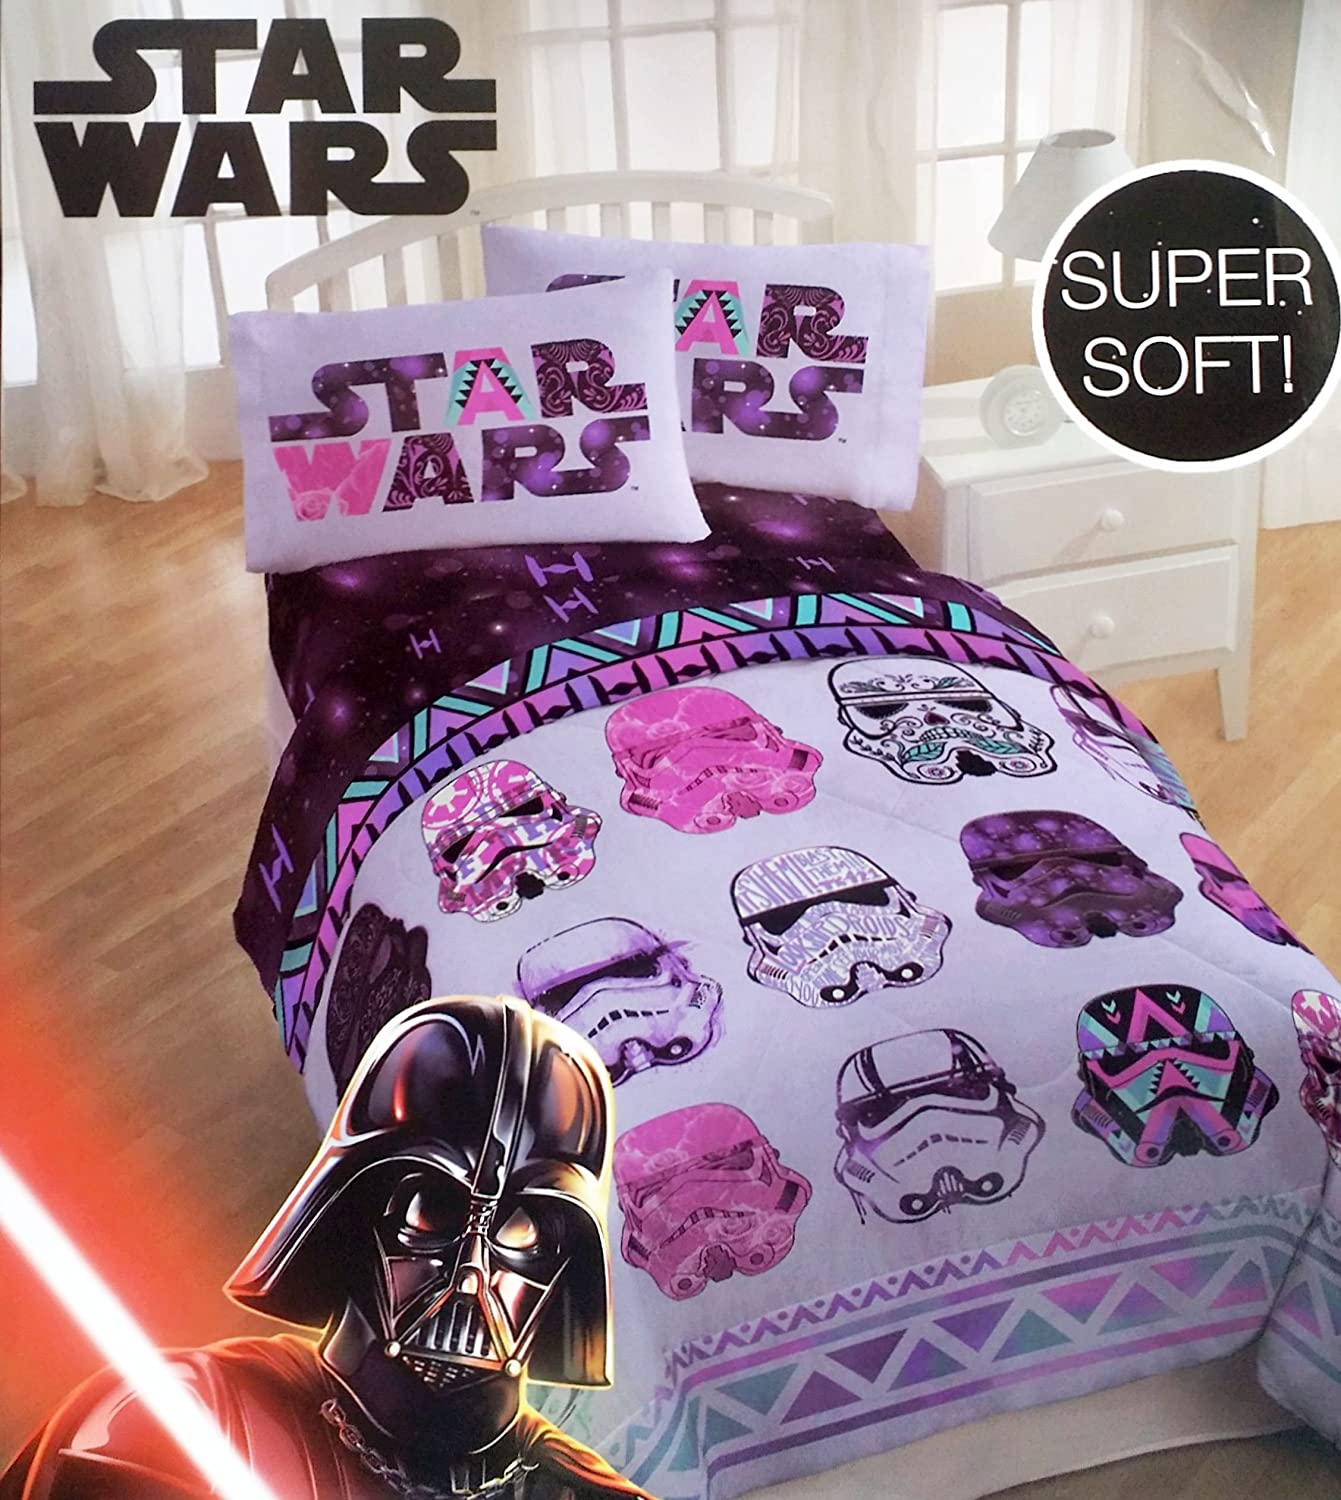 star wars bedroom set. Amazon com  Star Wars Girls 4 Piece Bedding Set Reversible Comforter and Sheets Twin Size Home Kitchen